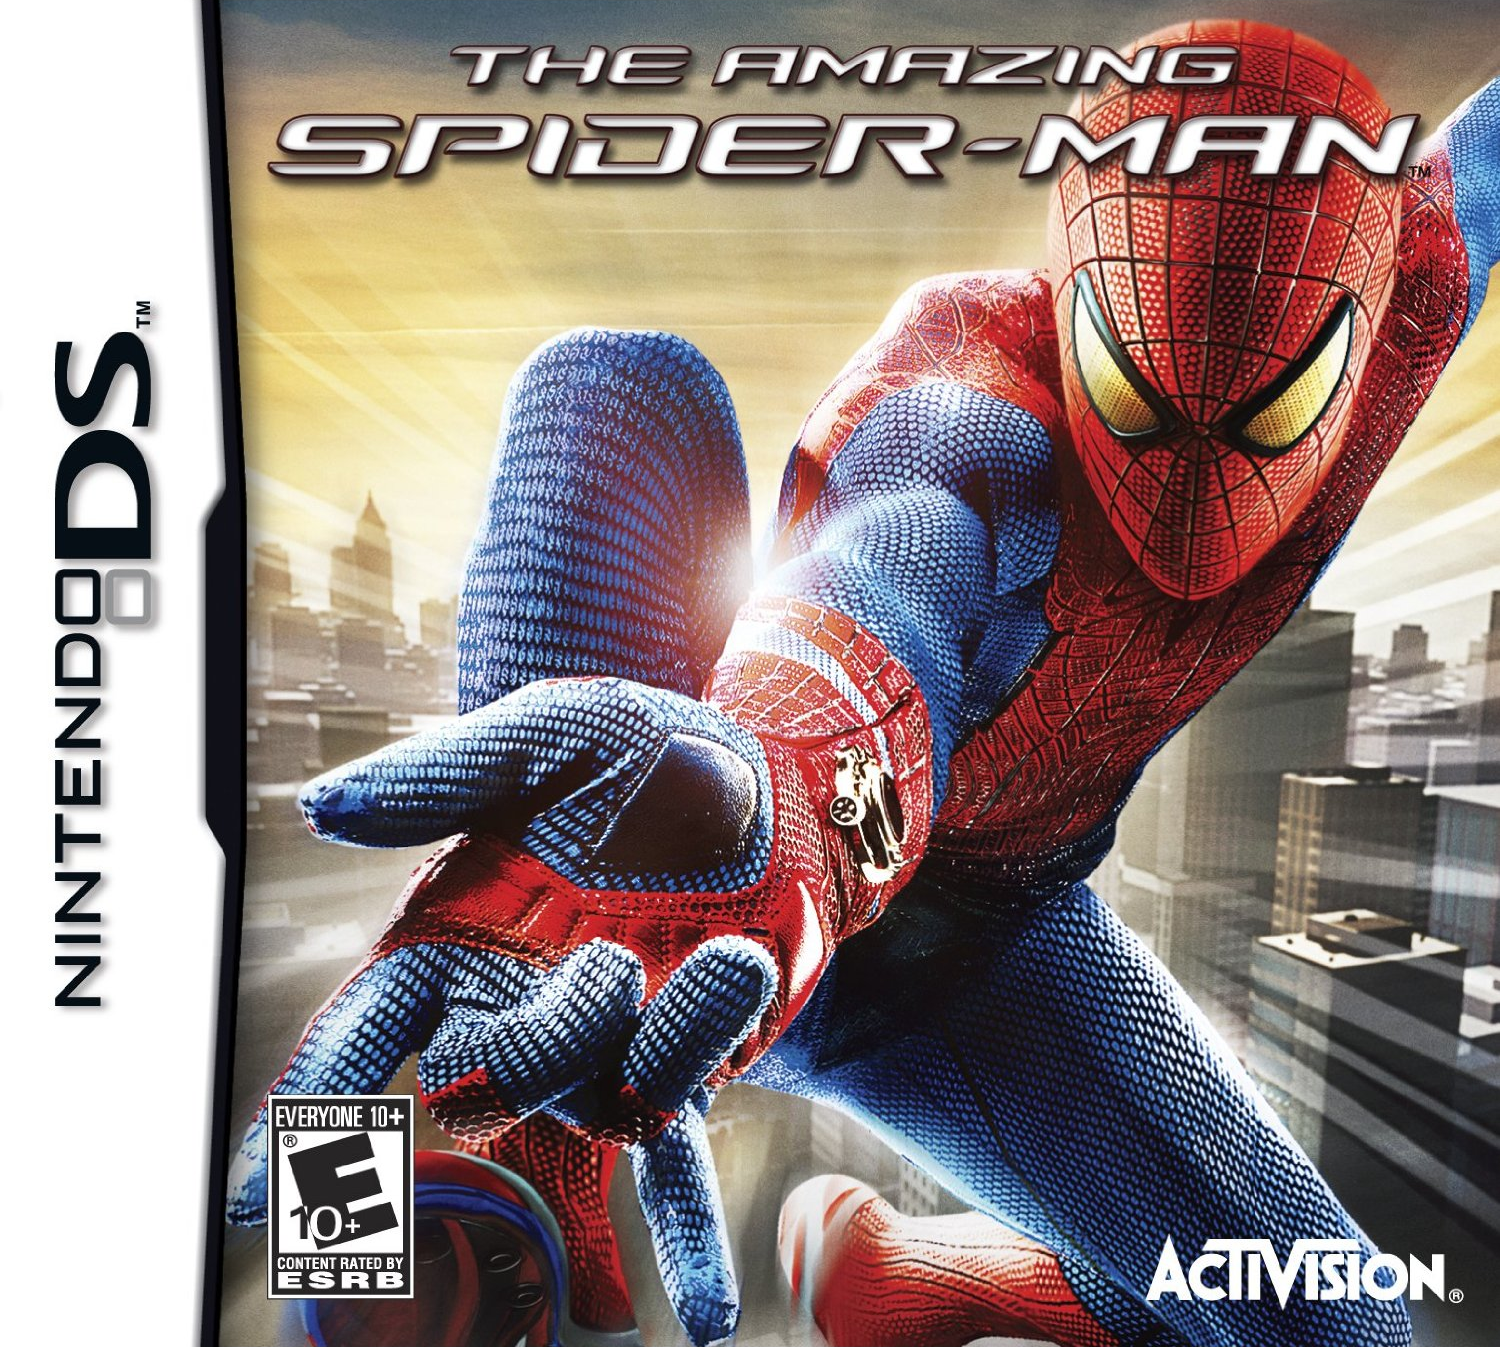 The Amazing Spider-Man - Nintendo DS game 1.png